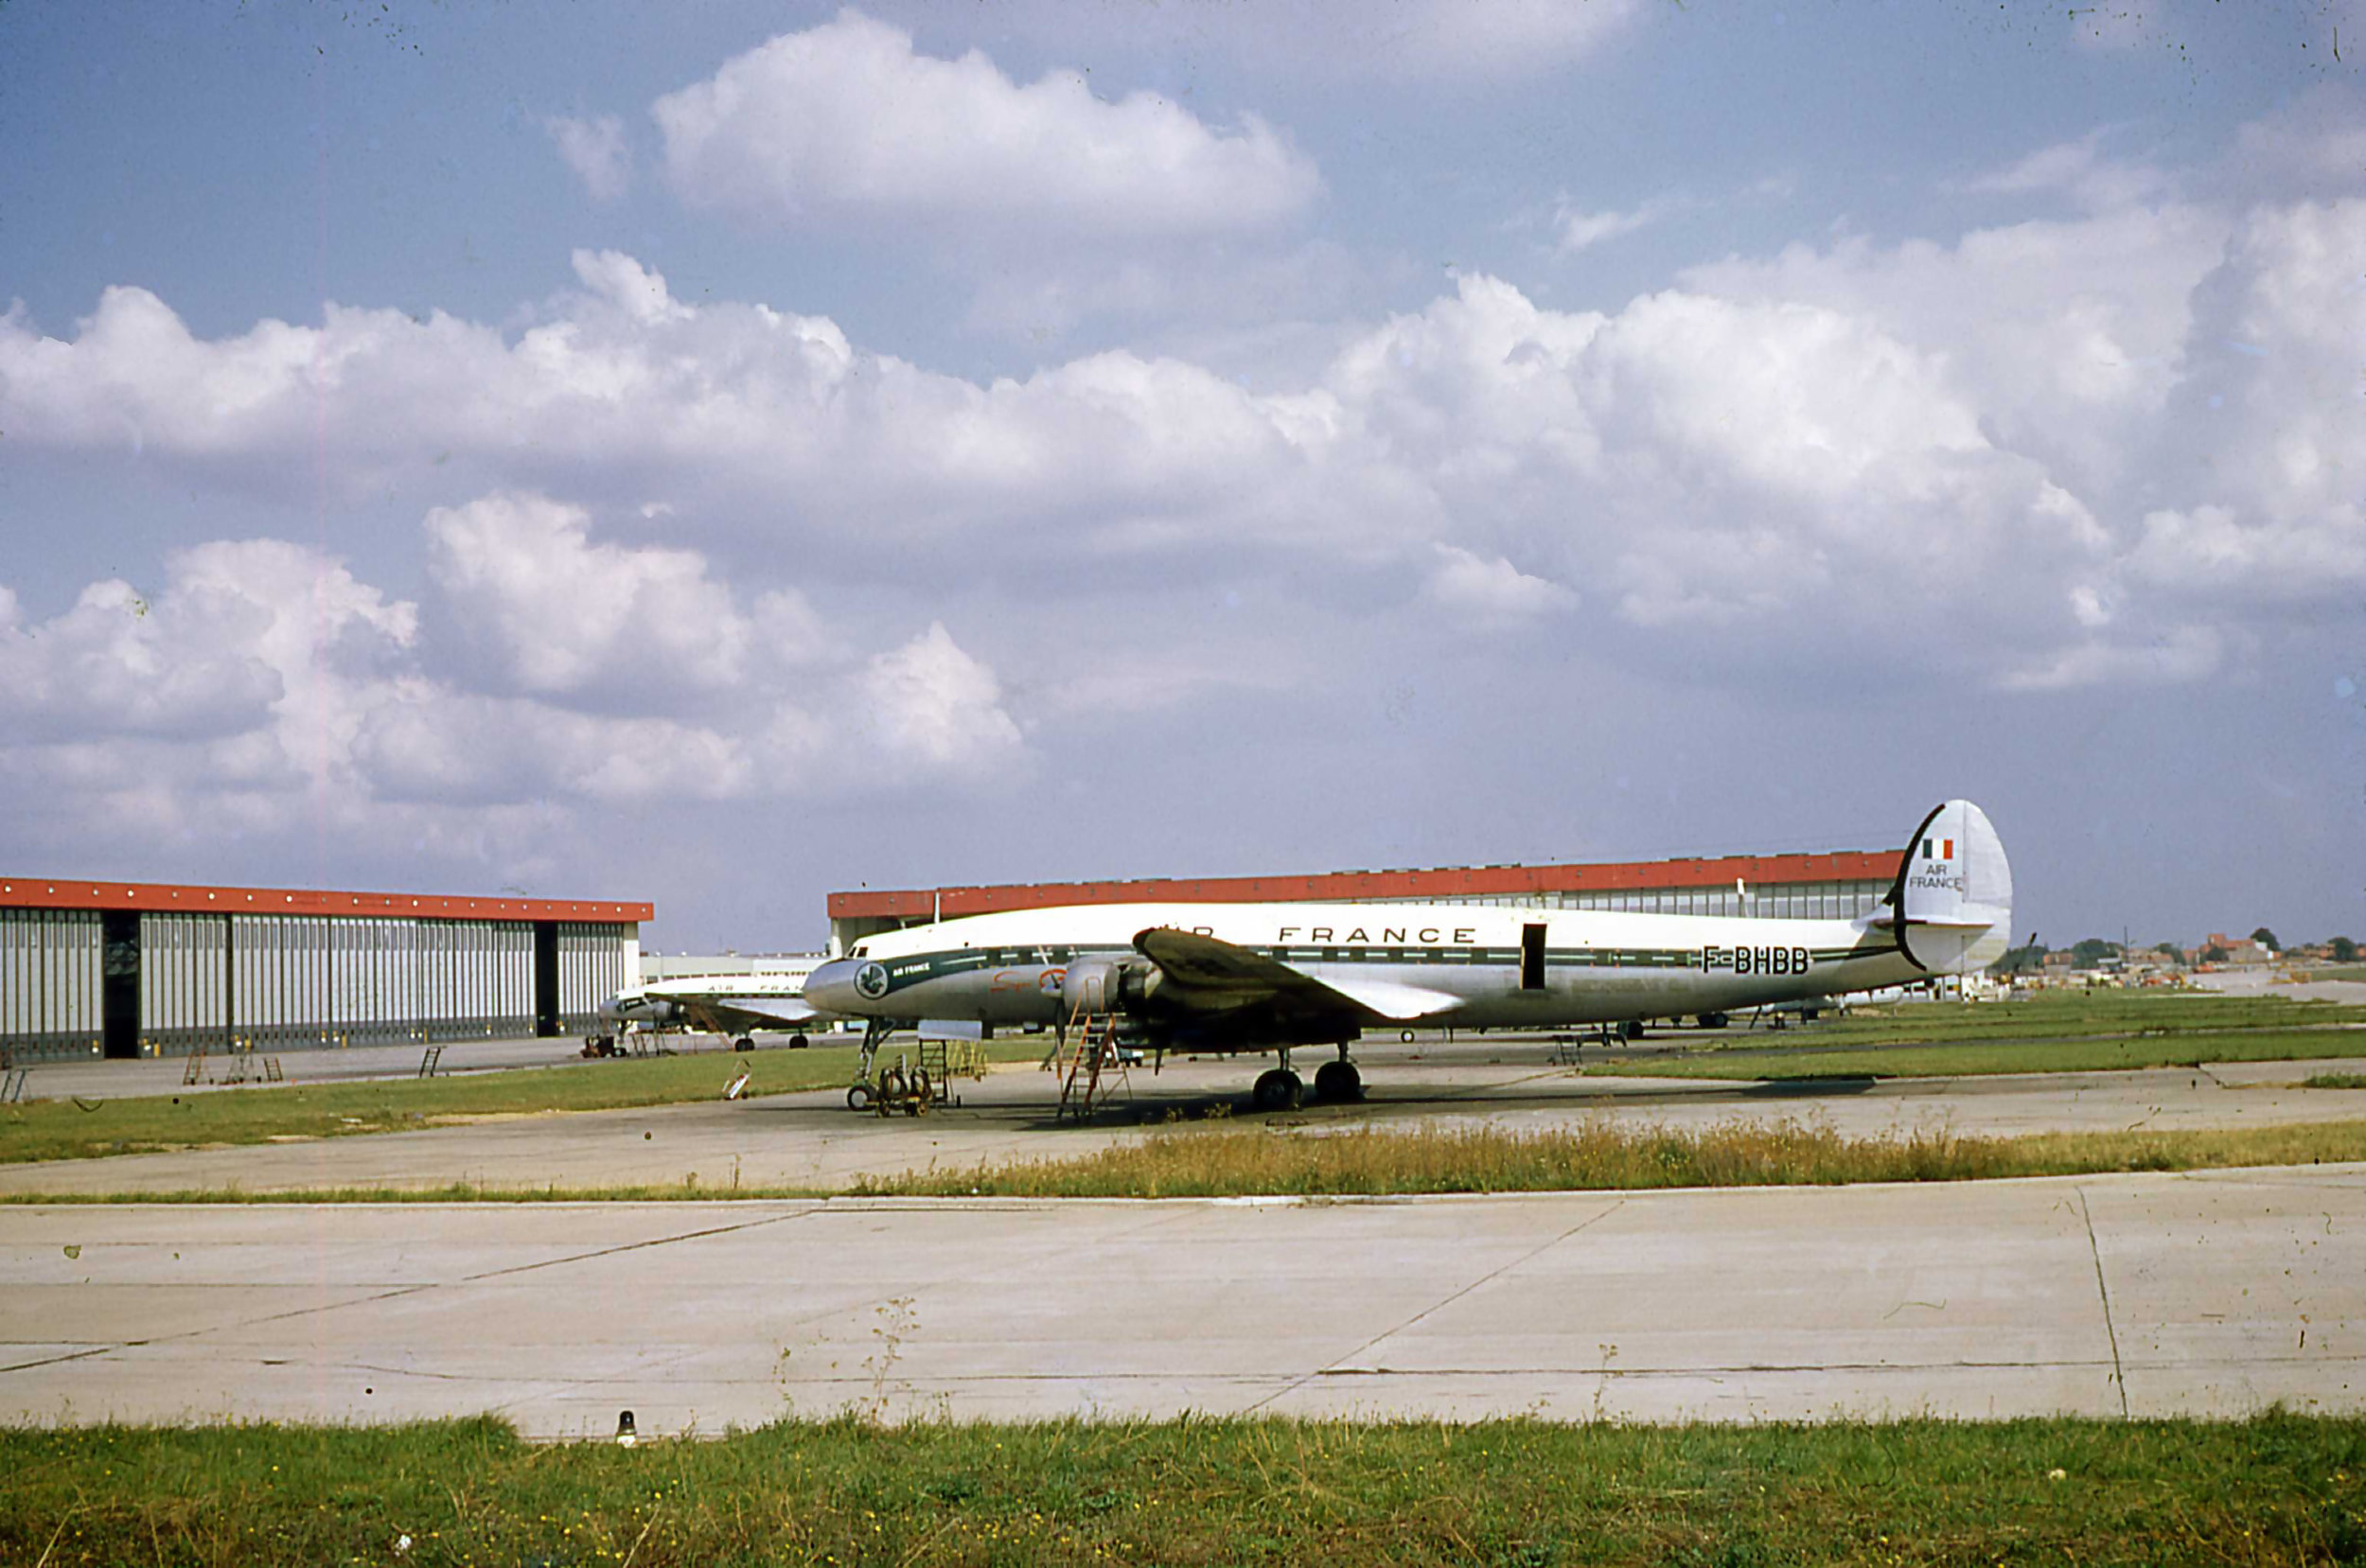 Air France Connie F-BHBB on the Air France maintenance area at Paris Orly in September 1968